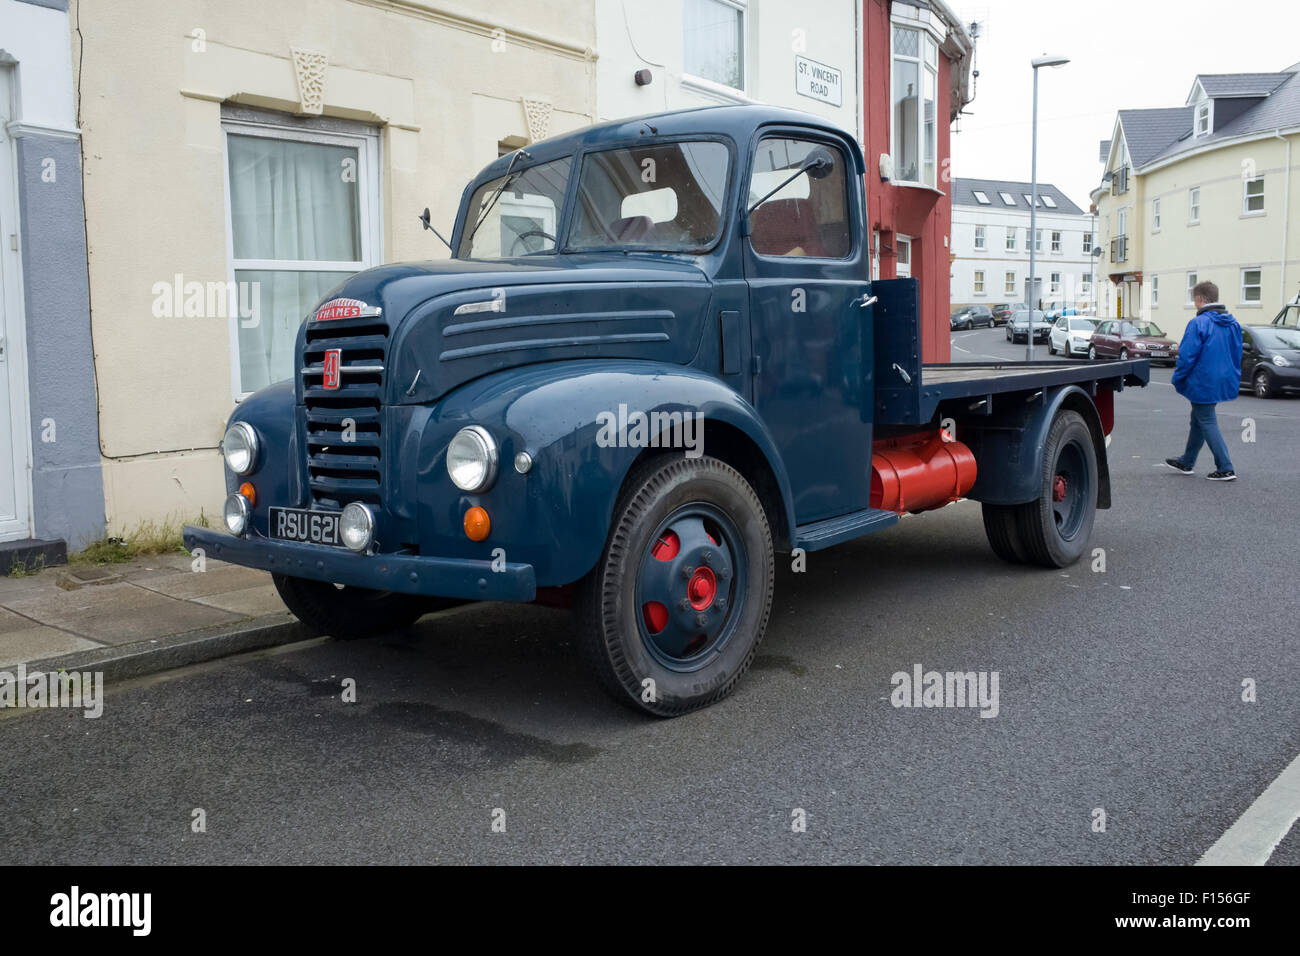 Thames Trader Lorry Stock Photos & Thames Trader Lorry Stock Images ...